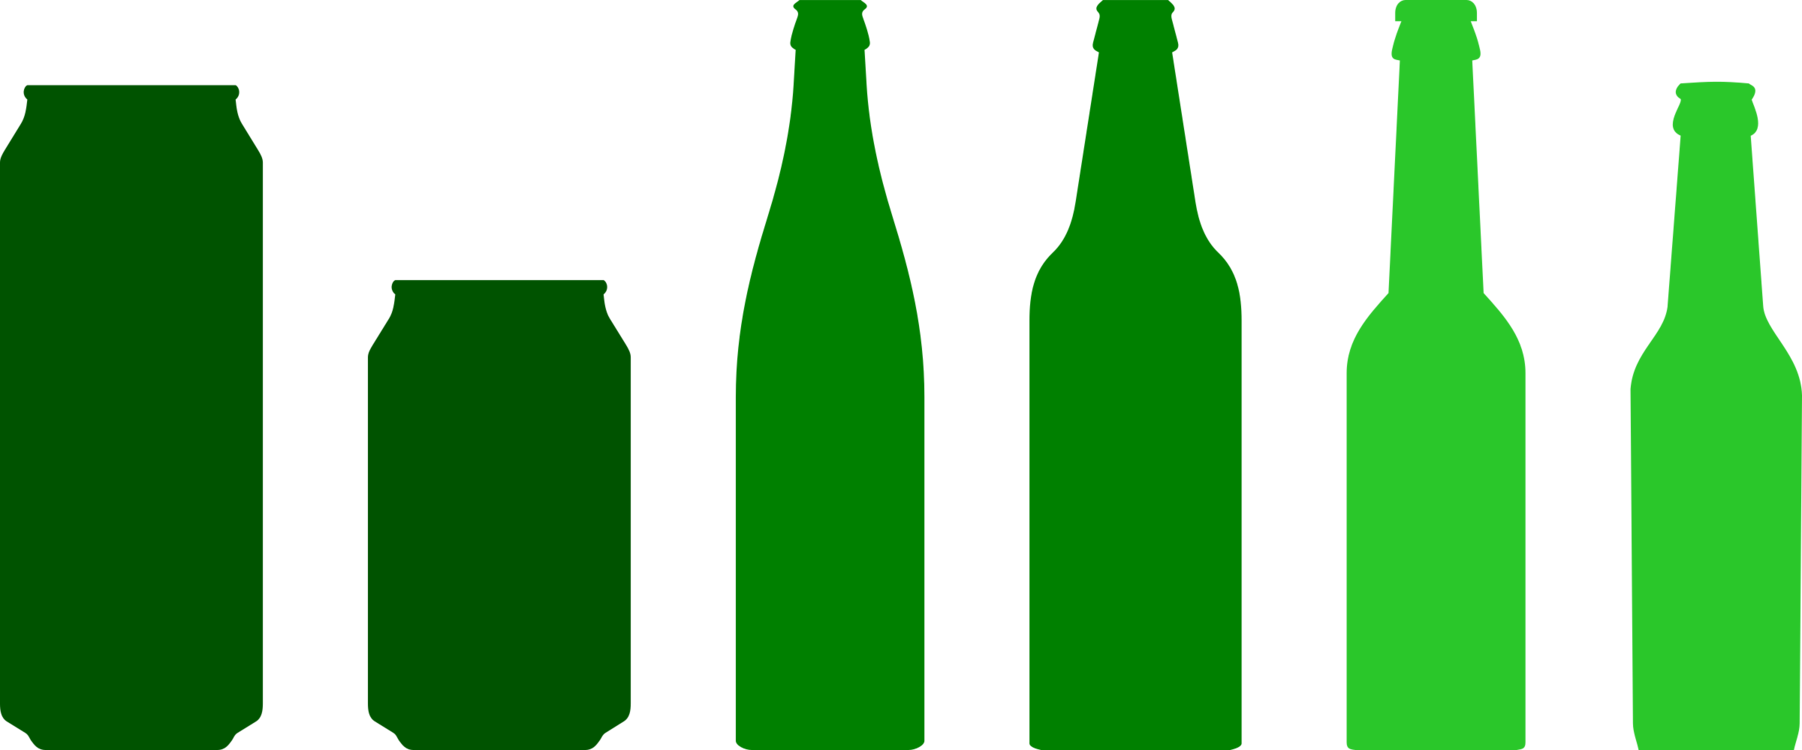 Beer Bottle,Glass Bottle,Green Vector Clipart.